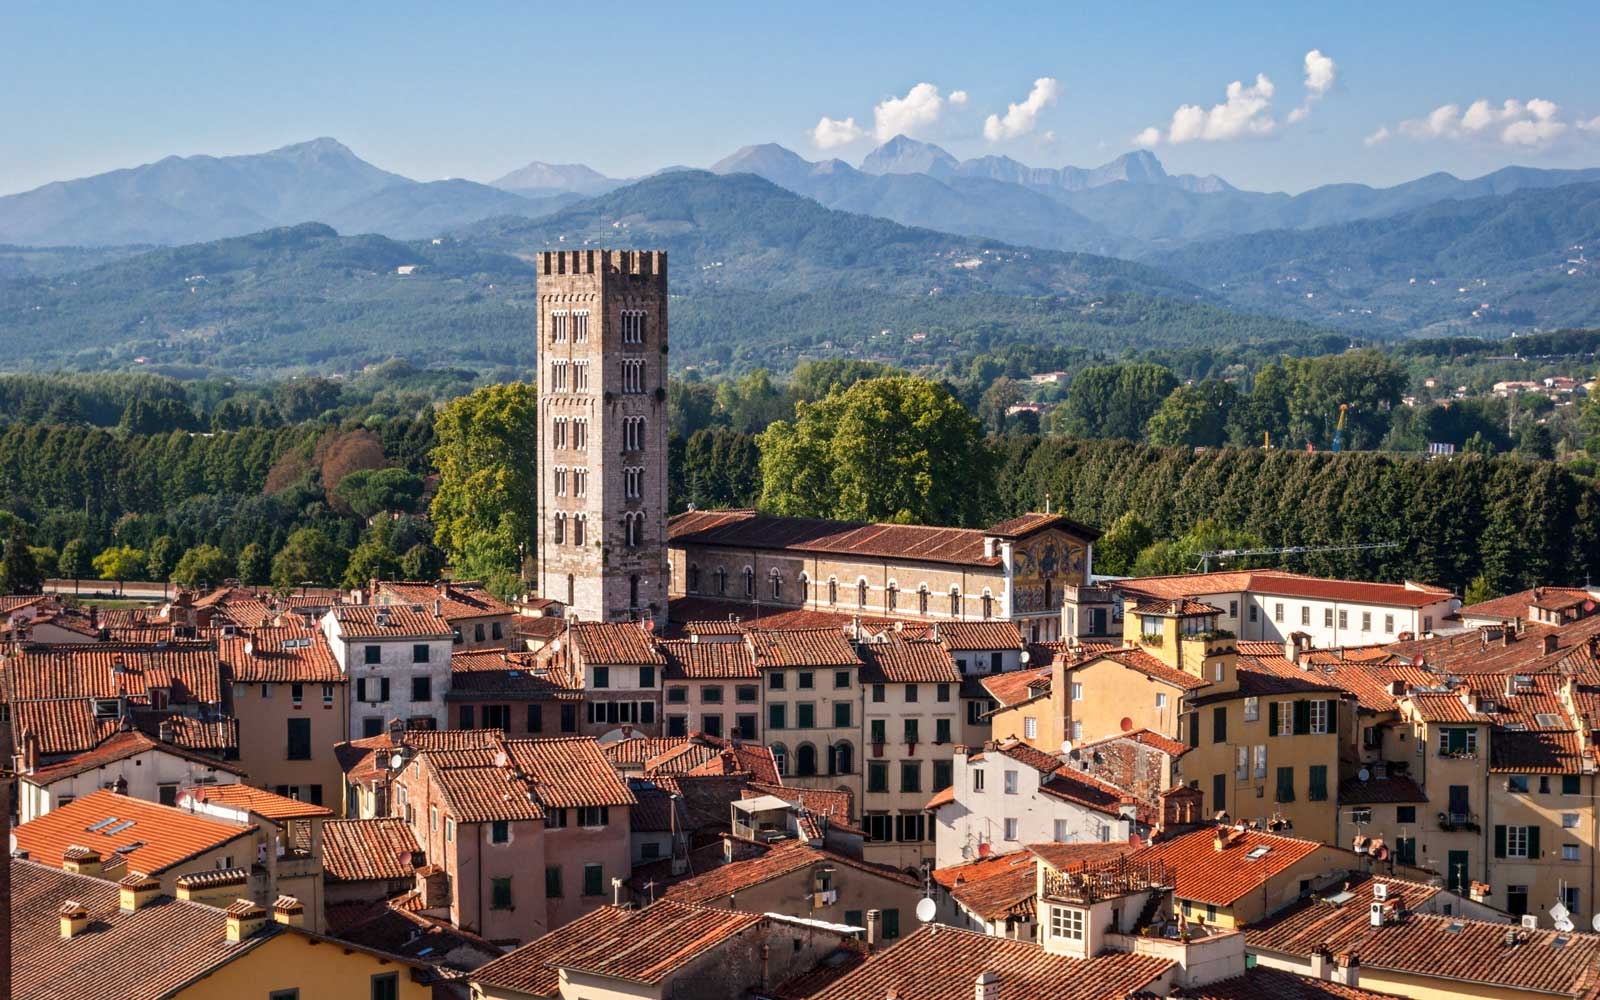 The Underrated Tuscan City You Need to Visit, According to a Chef Who Grew Up There